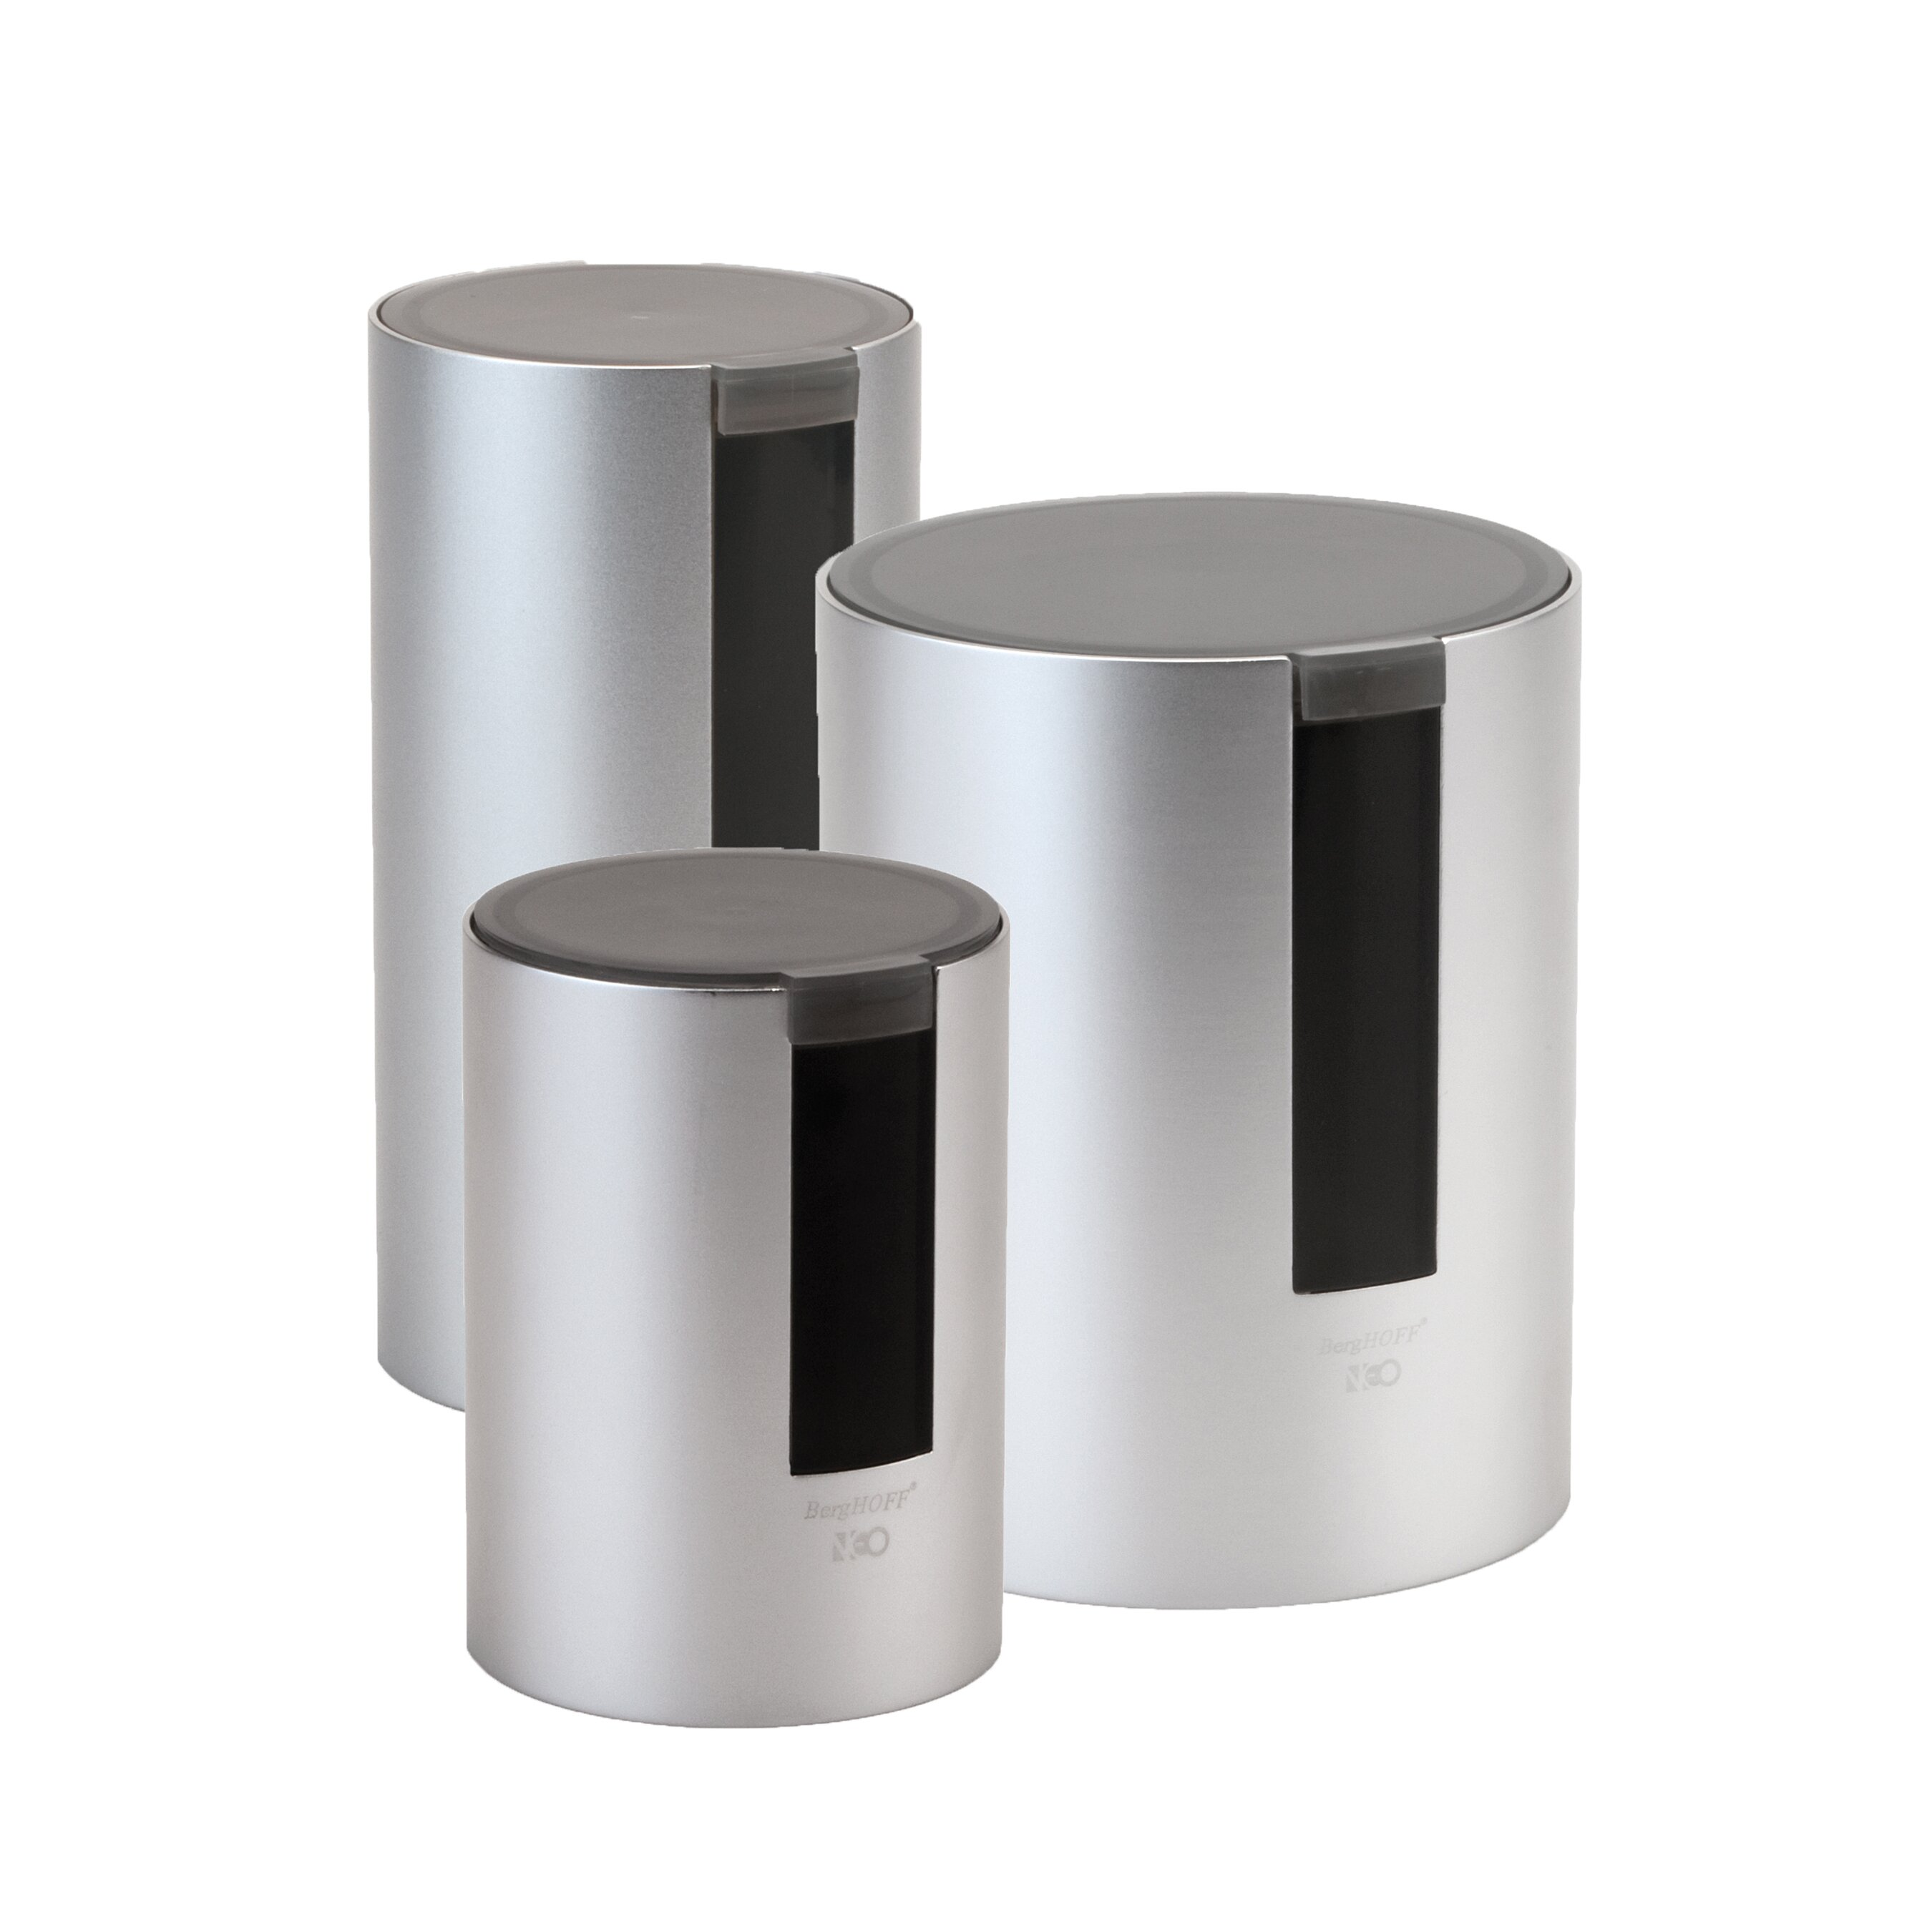 Berghoff neo 3 piece canister set reviews wayfair for Hearth and home designs canister set